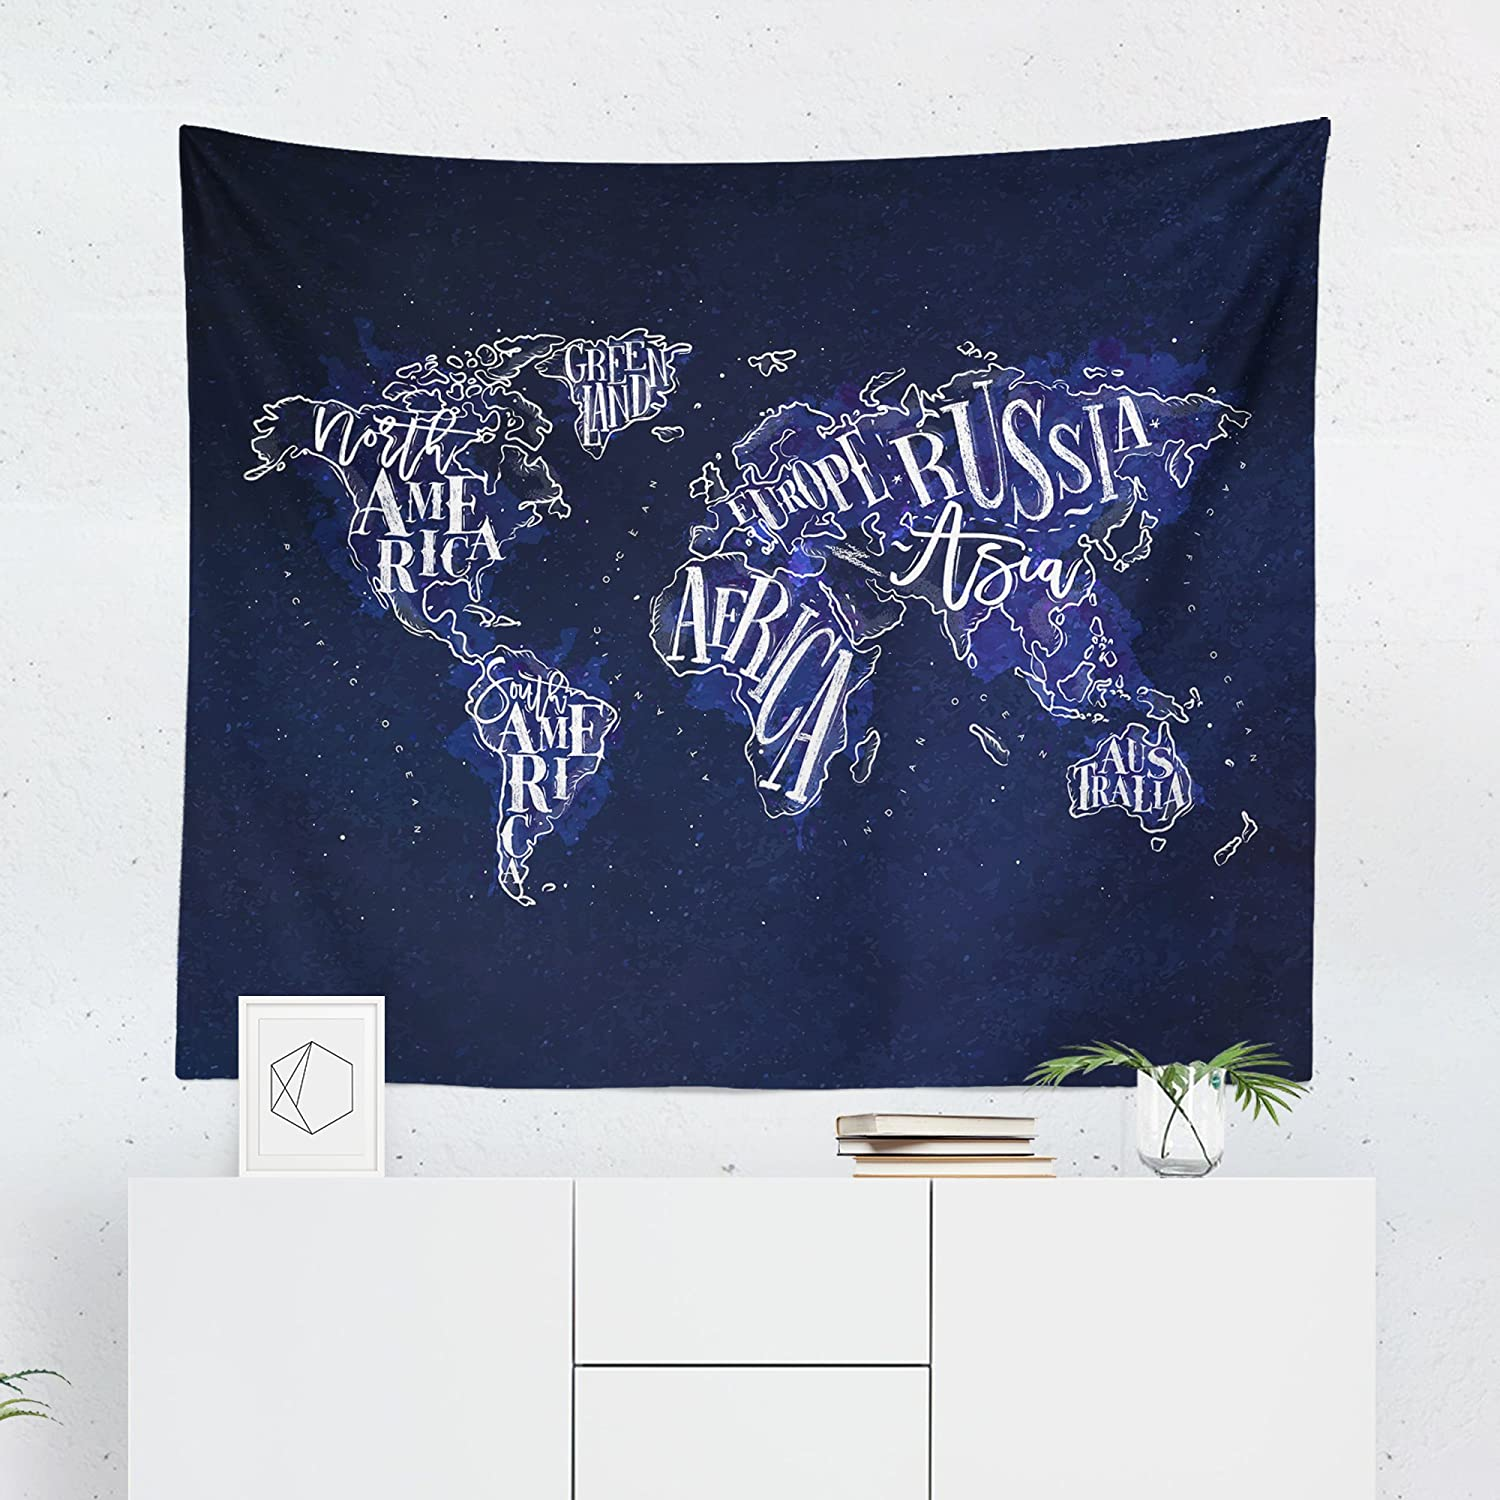 Blue World Map Tapestry - Maps Global Country Navy Wall Tapestries Hanging Décor Bedroom Dorm College Living Room Home Art Print Decoration Decorative - Printed in the USA - Small Medium Large Sizes